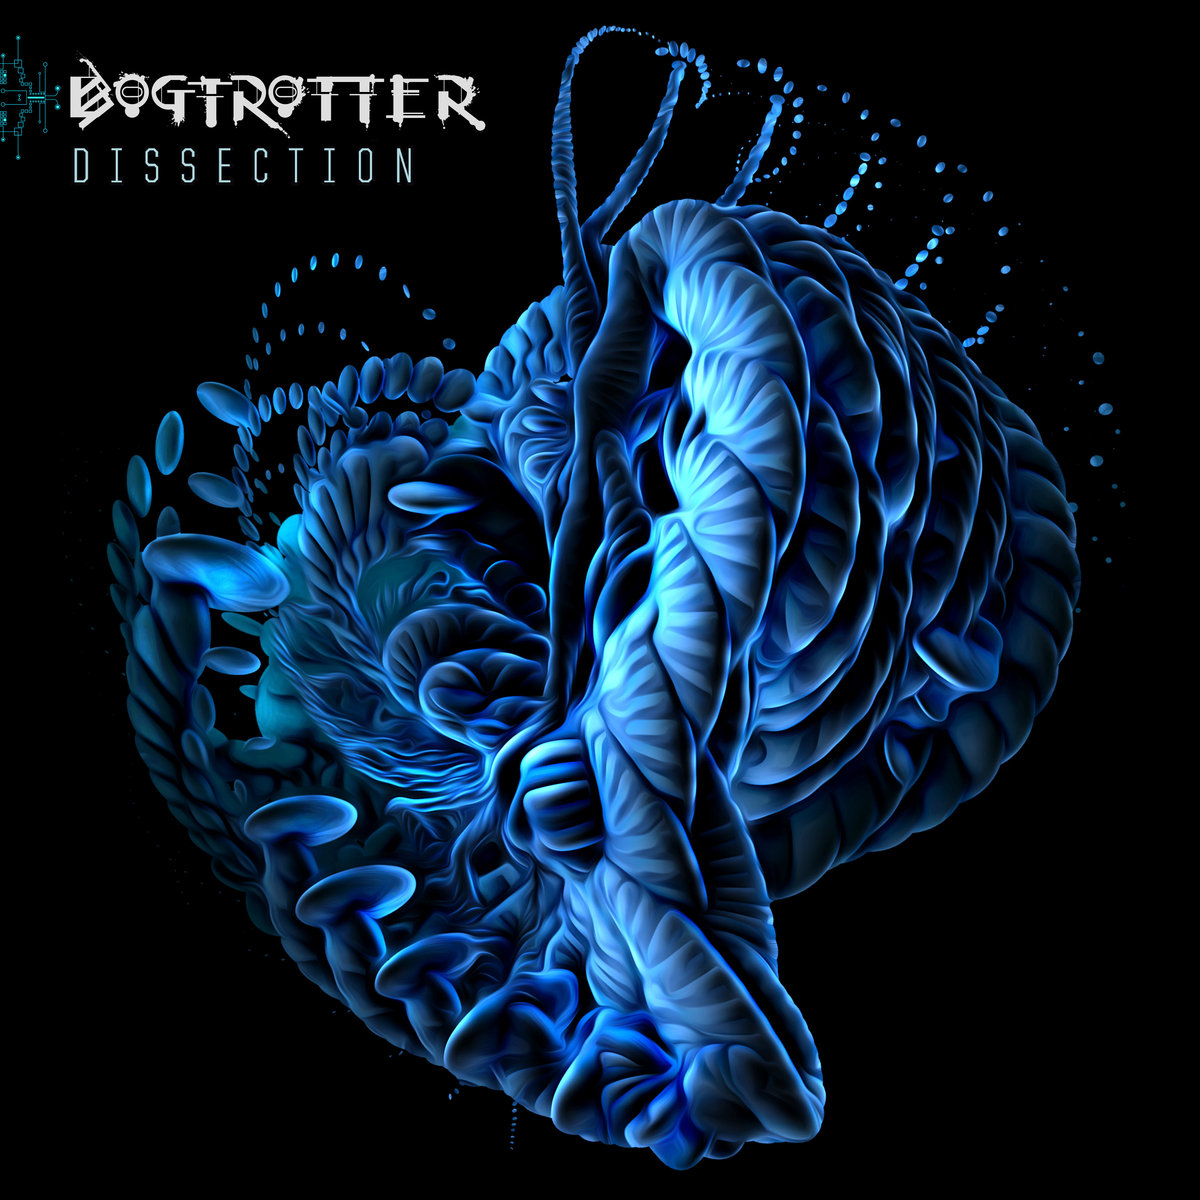 Bogtrotter - Dissection